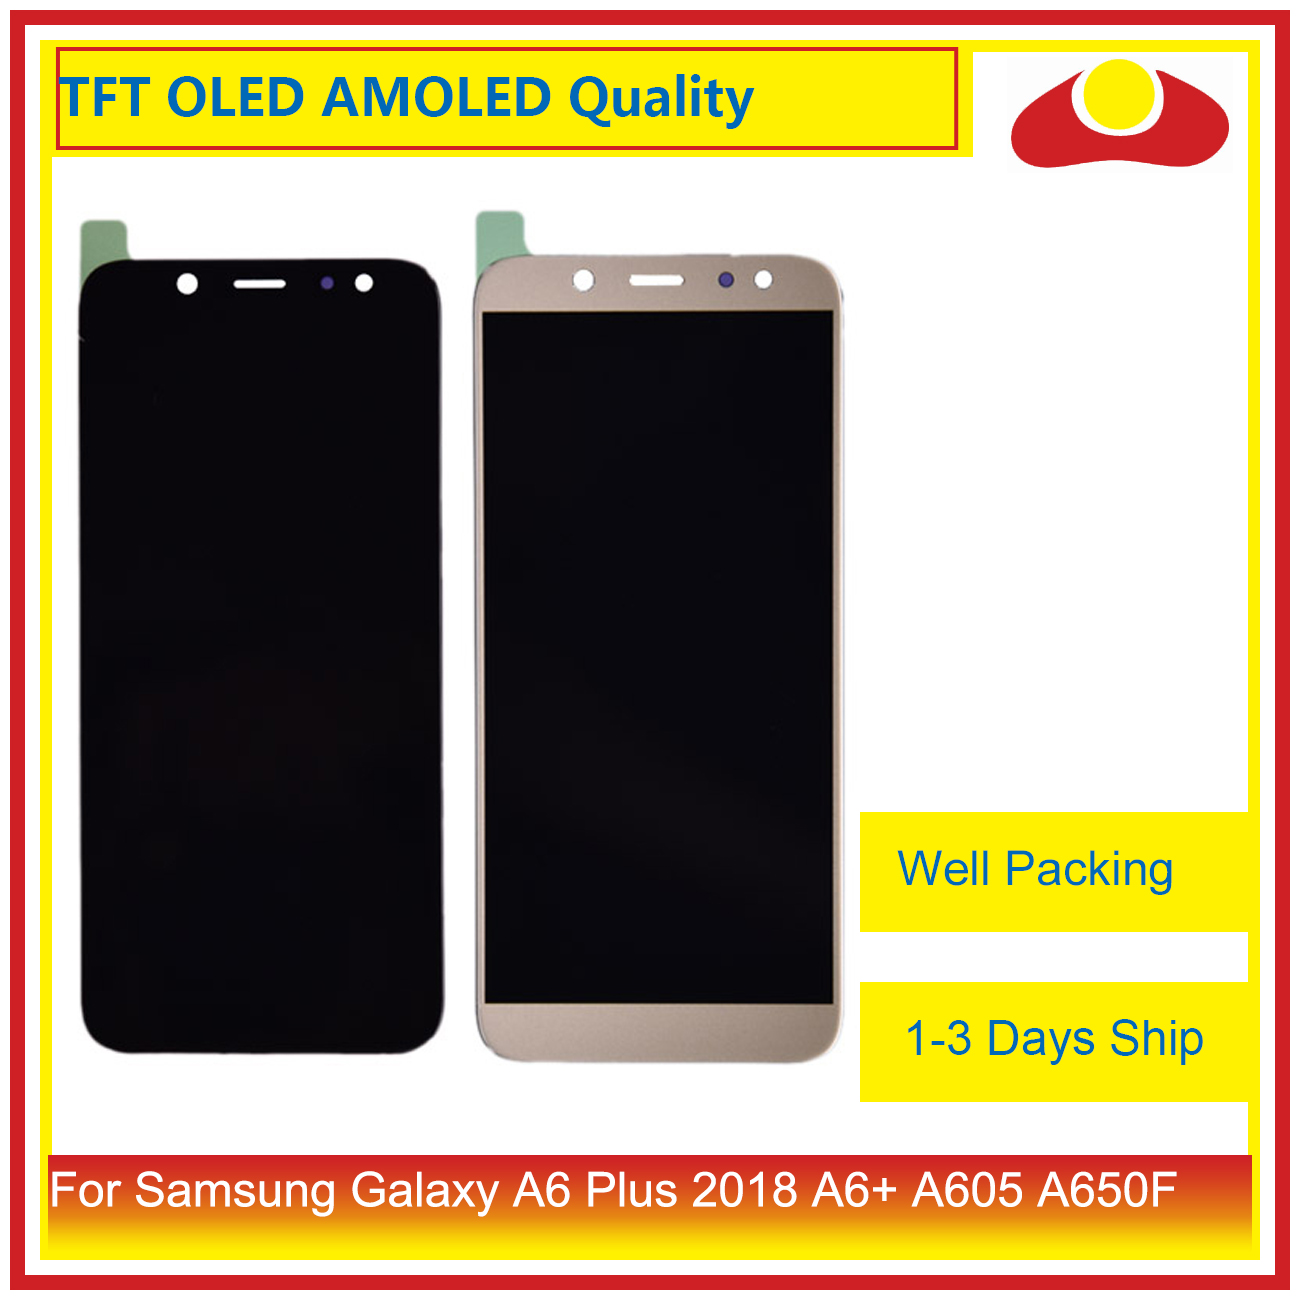 ORIGINAL For Samsung Galaxy A6 Plus 2018 A605 A6+ LCD Display With Touch Screen Digitizer Panel Monitor Assembly CompleteORIGINAL For Samsung Galaxy A6 Plus 2018 A605 A6+ LCD Display With Touch Screen Digitizer Panel Monitor Assembly Complete